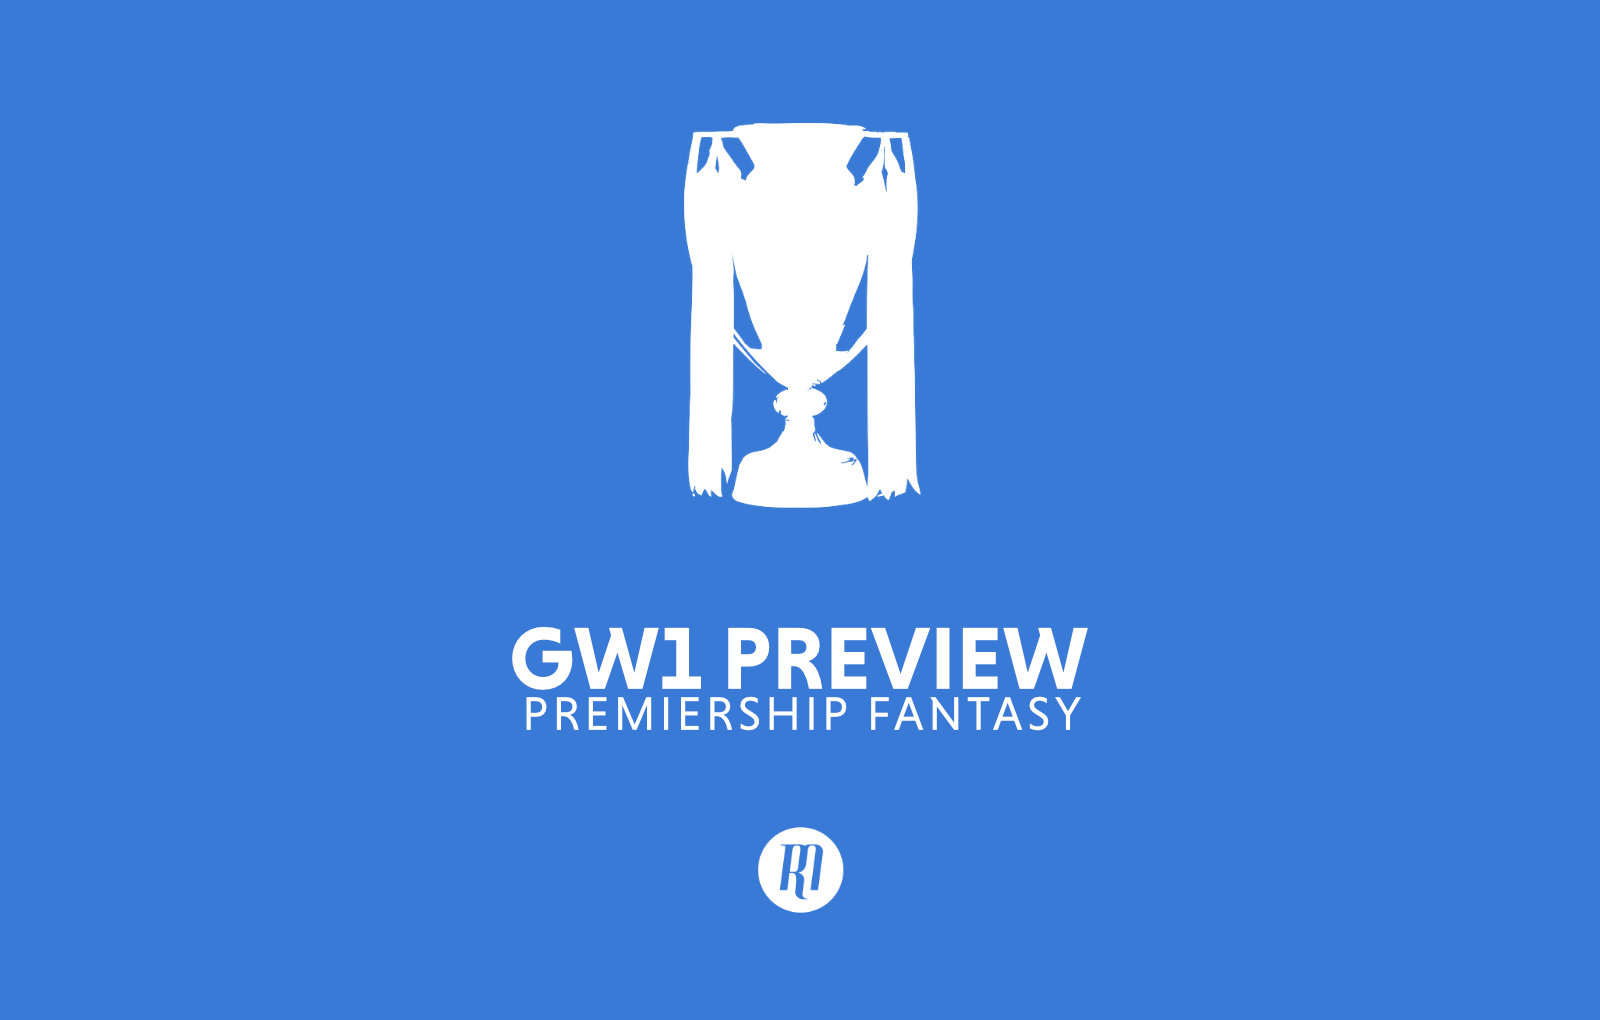 Fantasy Rugby: Premiership Gameweek 1 Preview